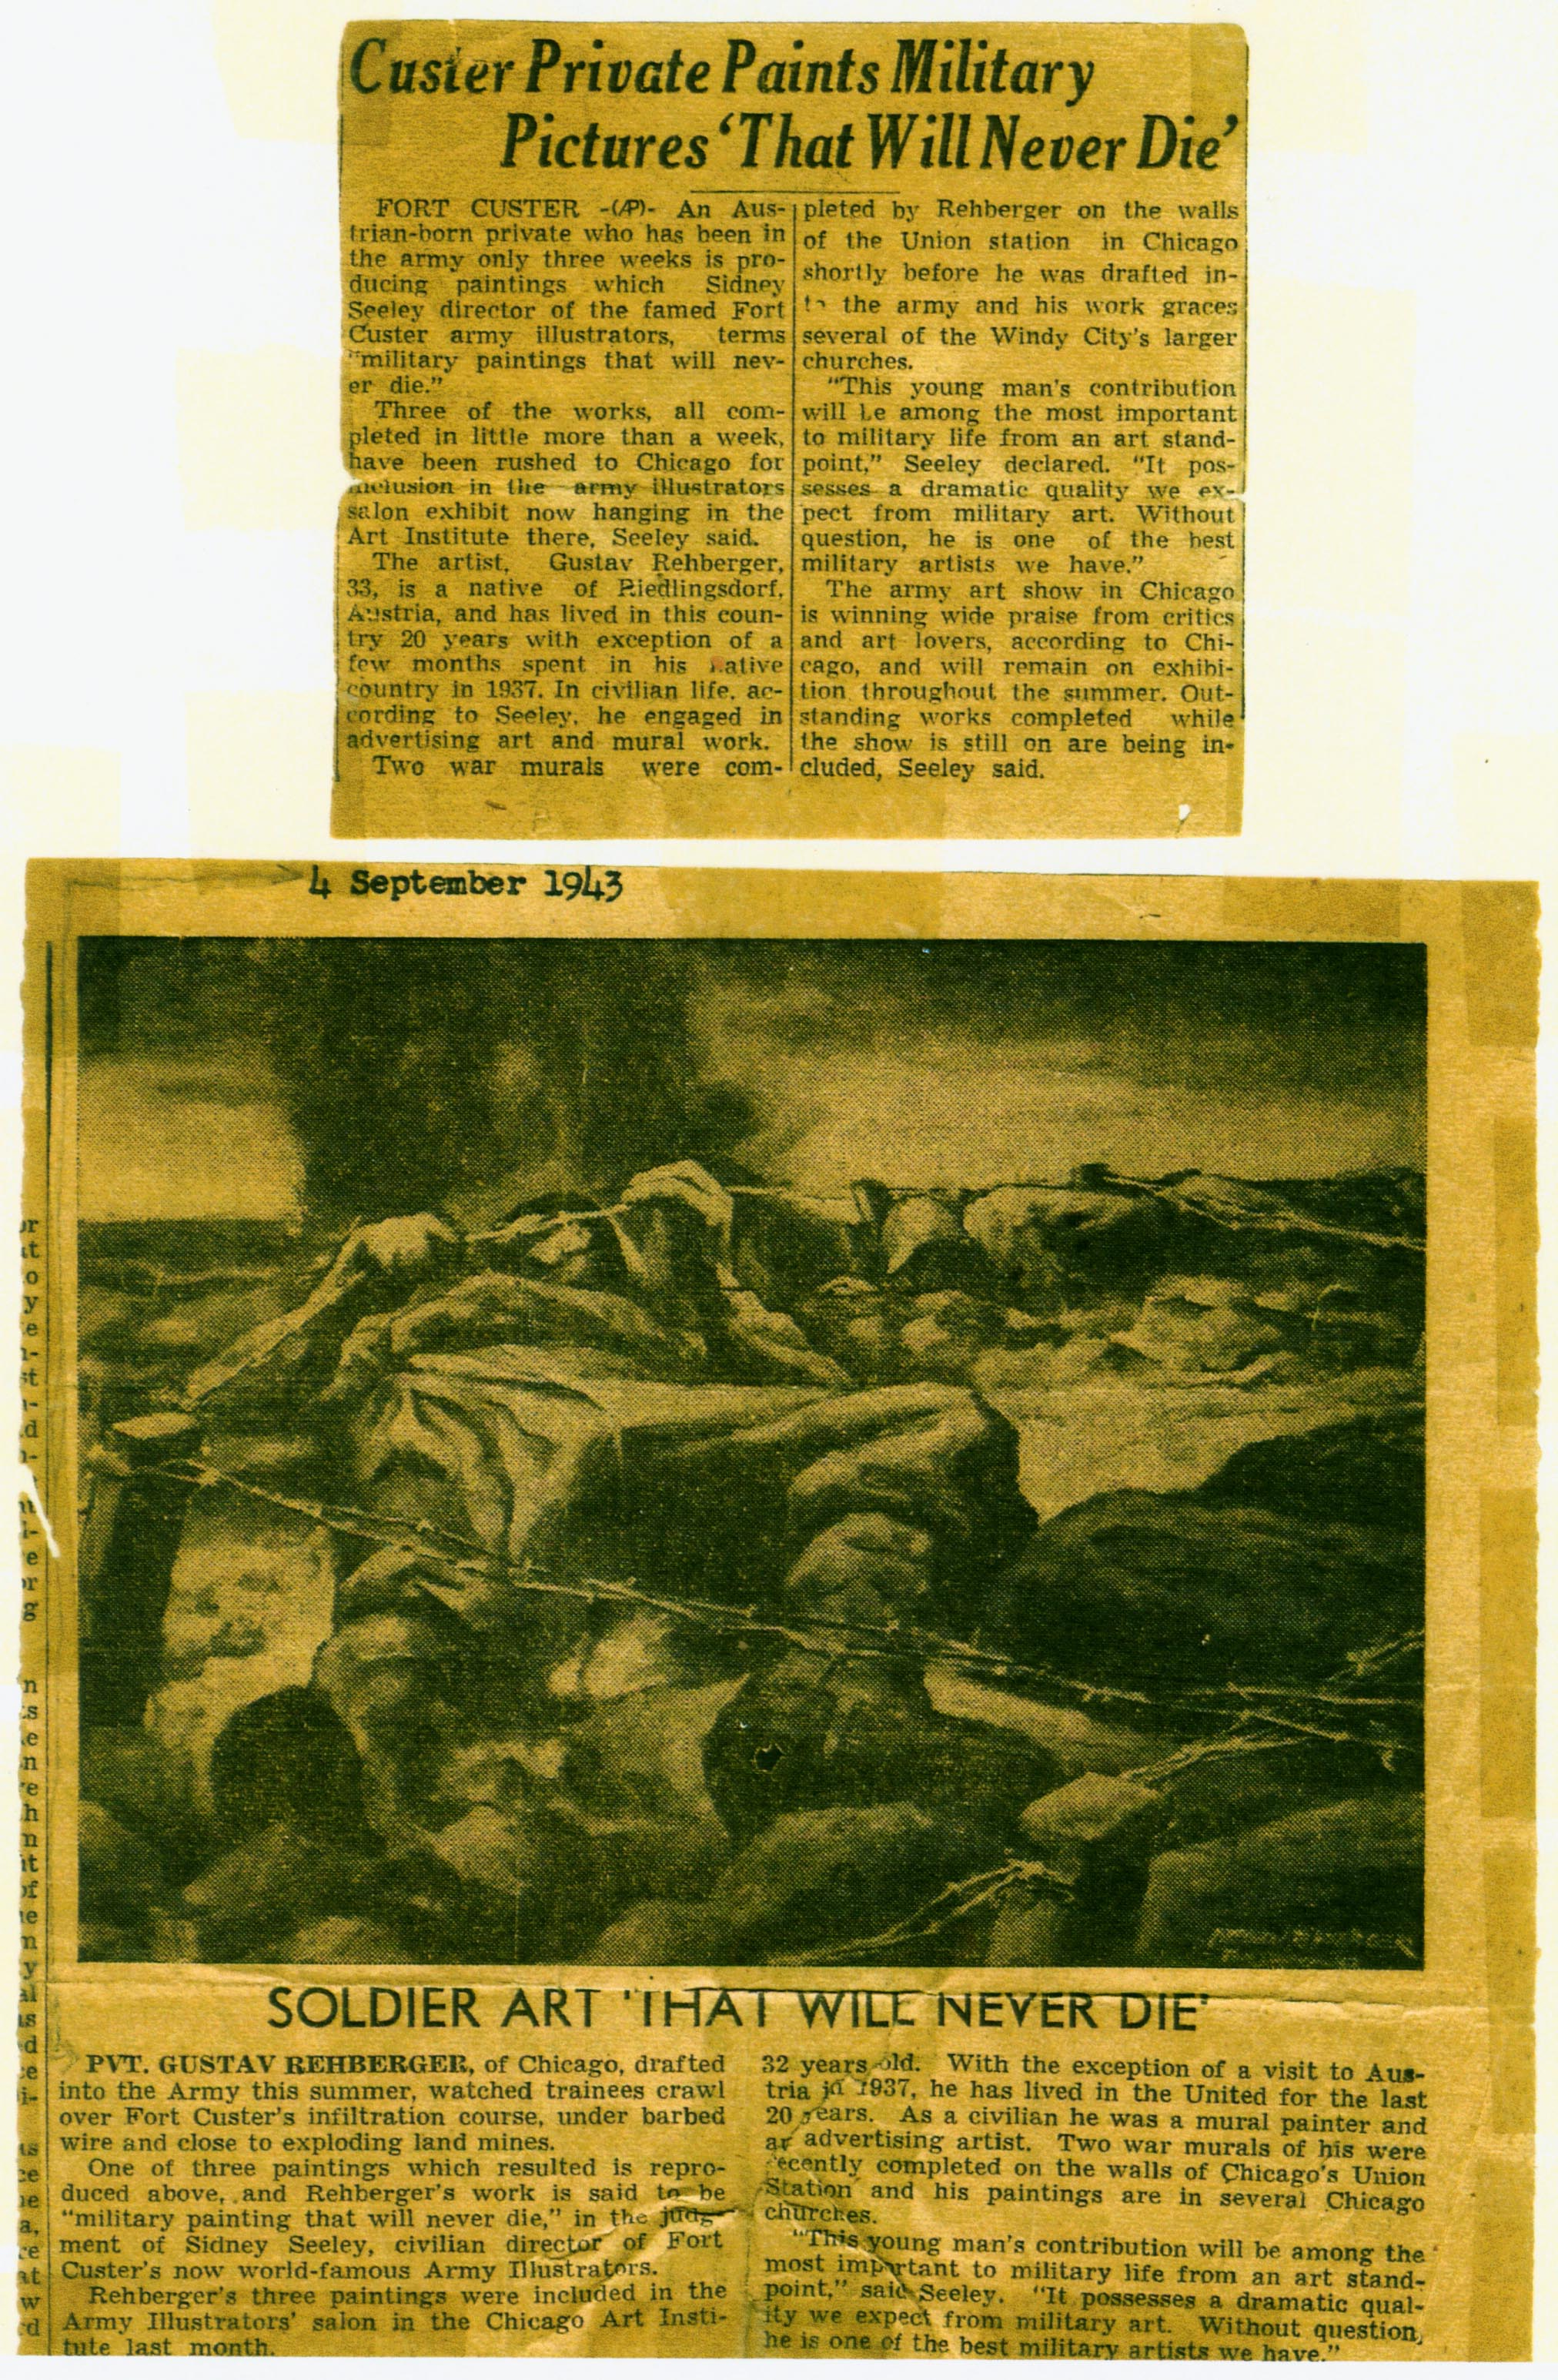 "Helen Bower. ""Soldier Art - That Will Never Die."" Detroit Free Press, September. 4, 1943. Painting Titled, ""Under the Wire"" by Private Gustav Rehberger, Special Services Artist with the Fort Custer Illustrators."